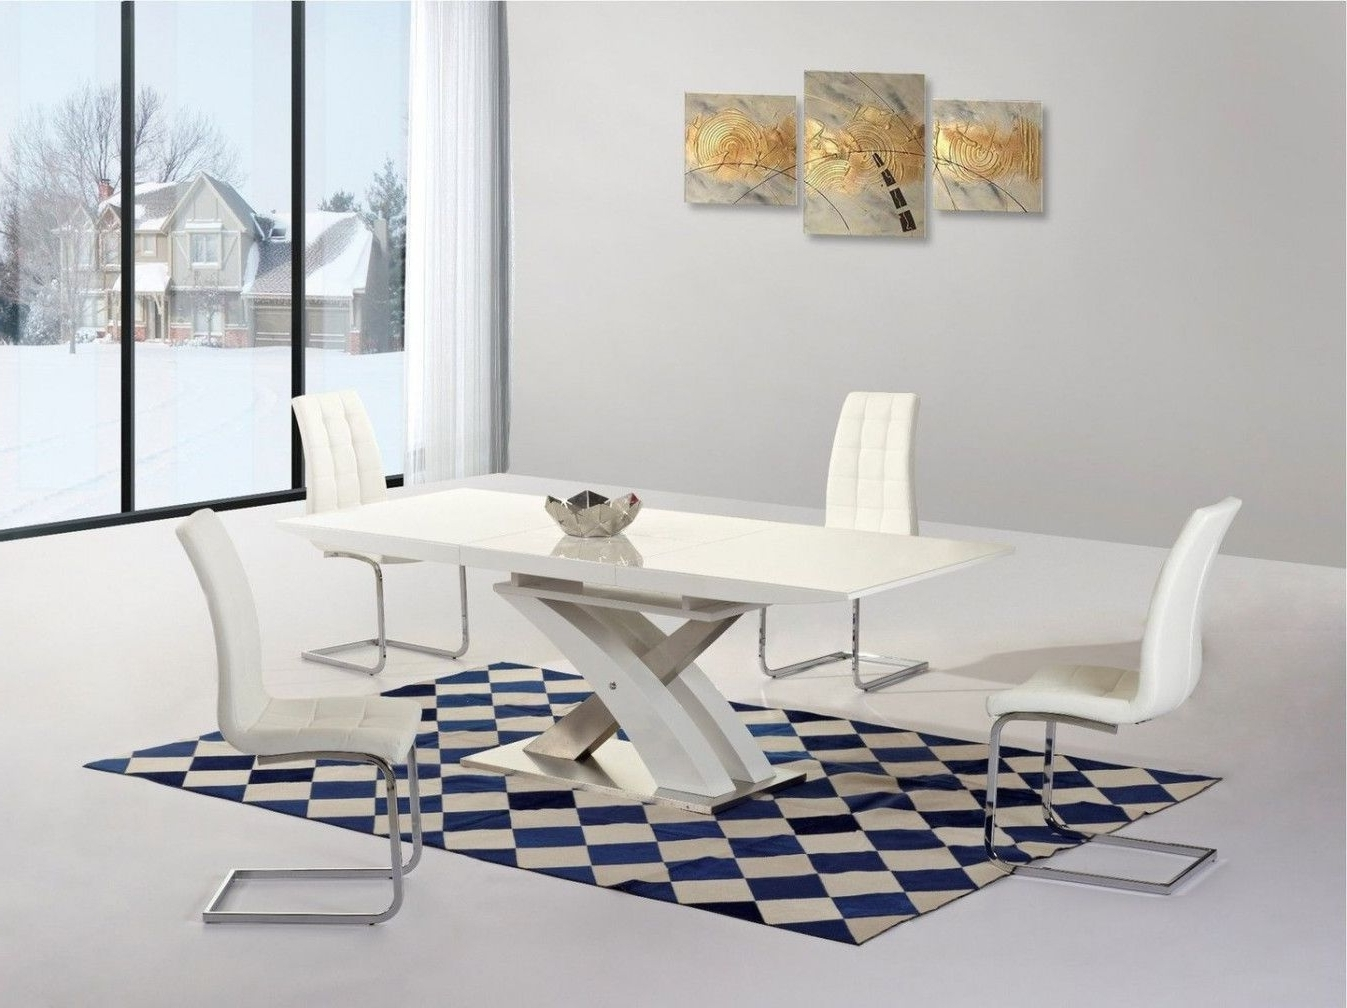 High Gloss Dining Tables intended for Latest 20+ White High Gloss Dining Table And Chairs - Modern European